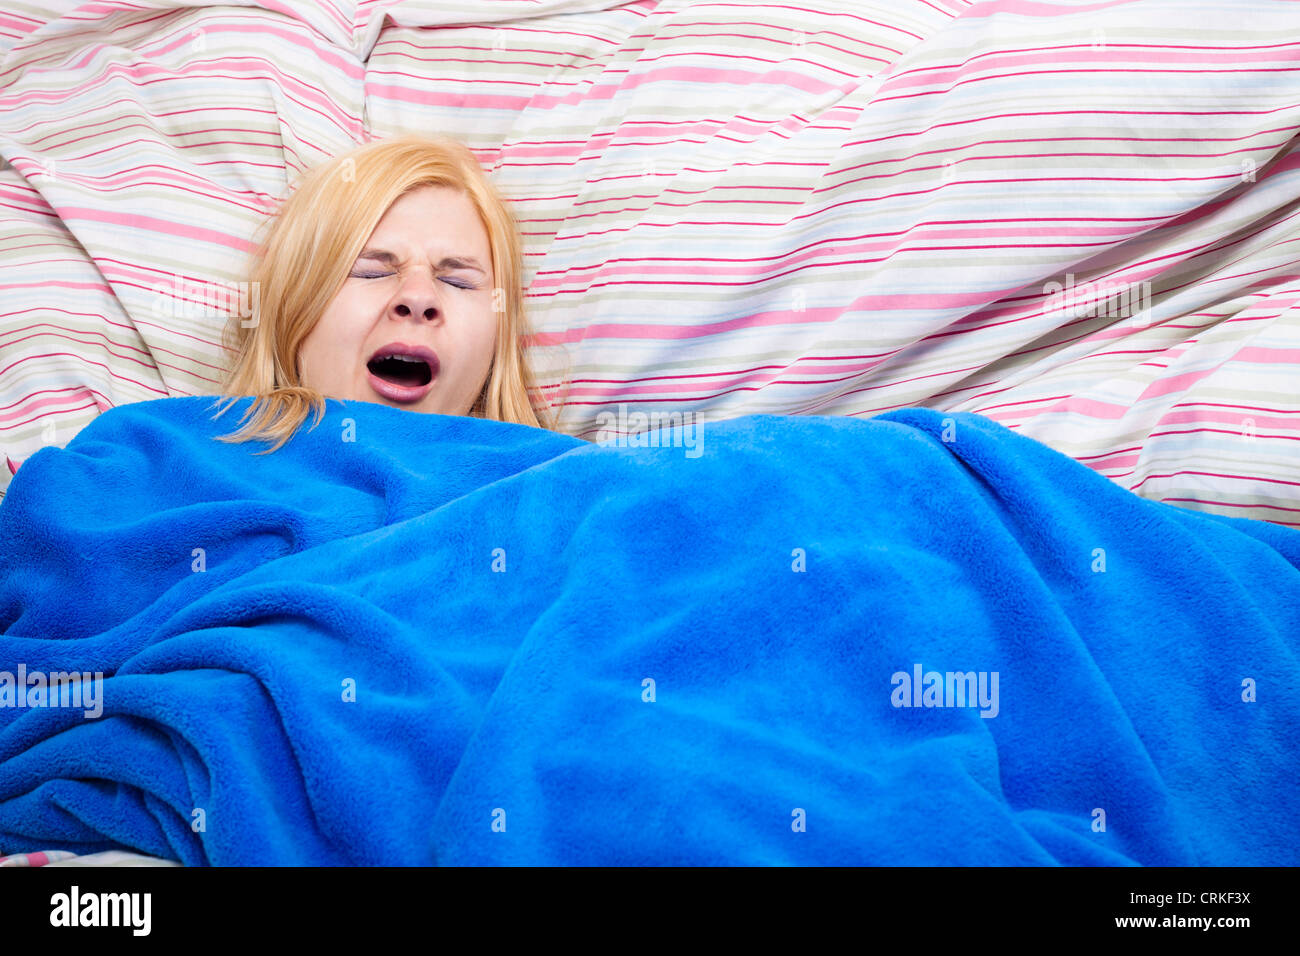 Sleepy woman yawning wrapped in a duvet. - Stock Image